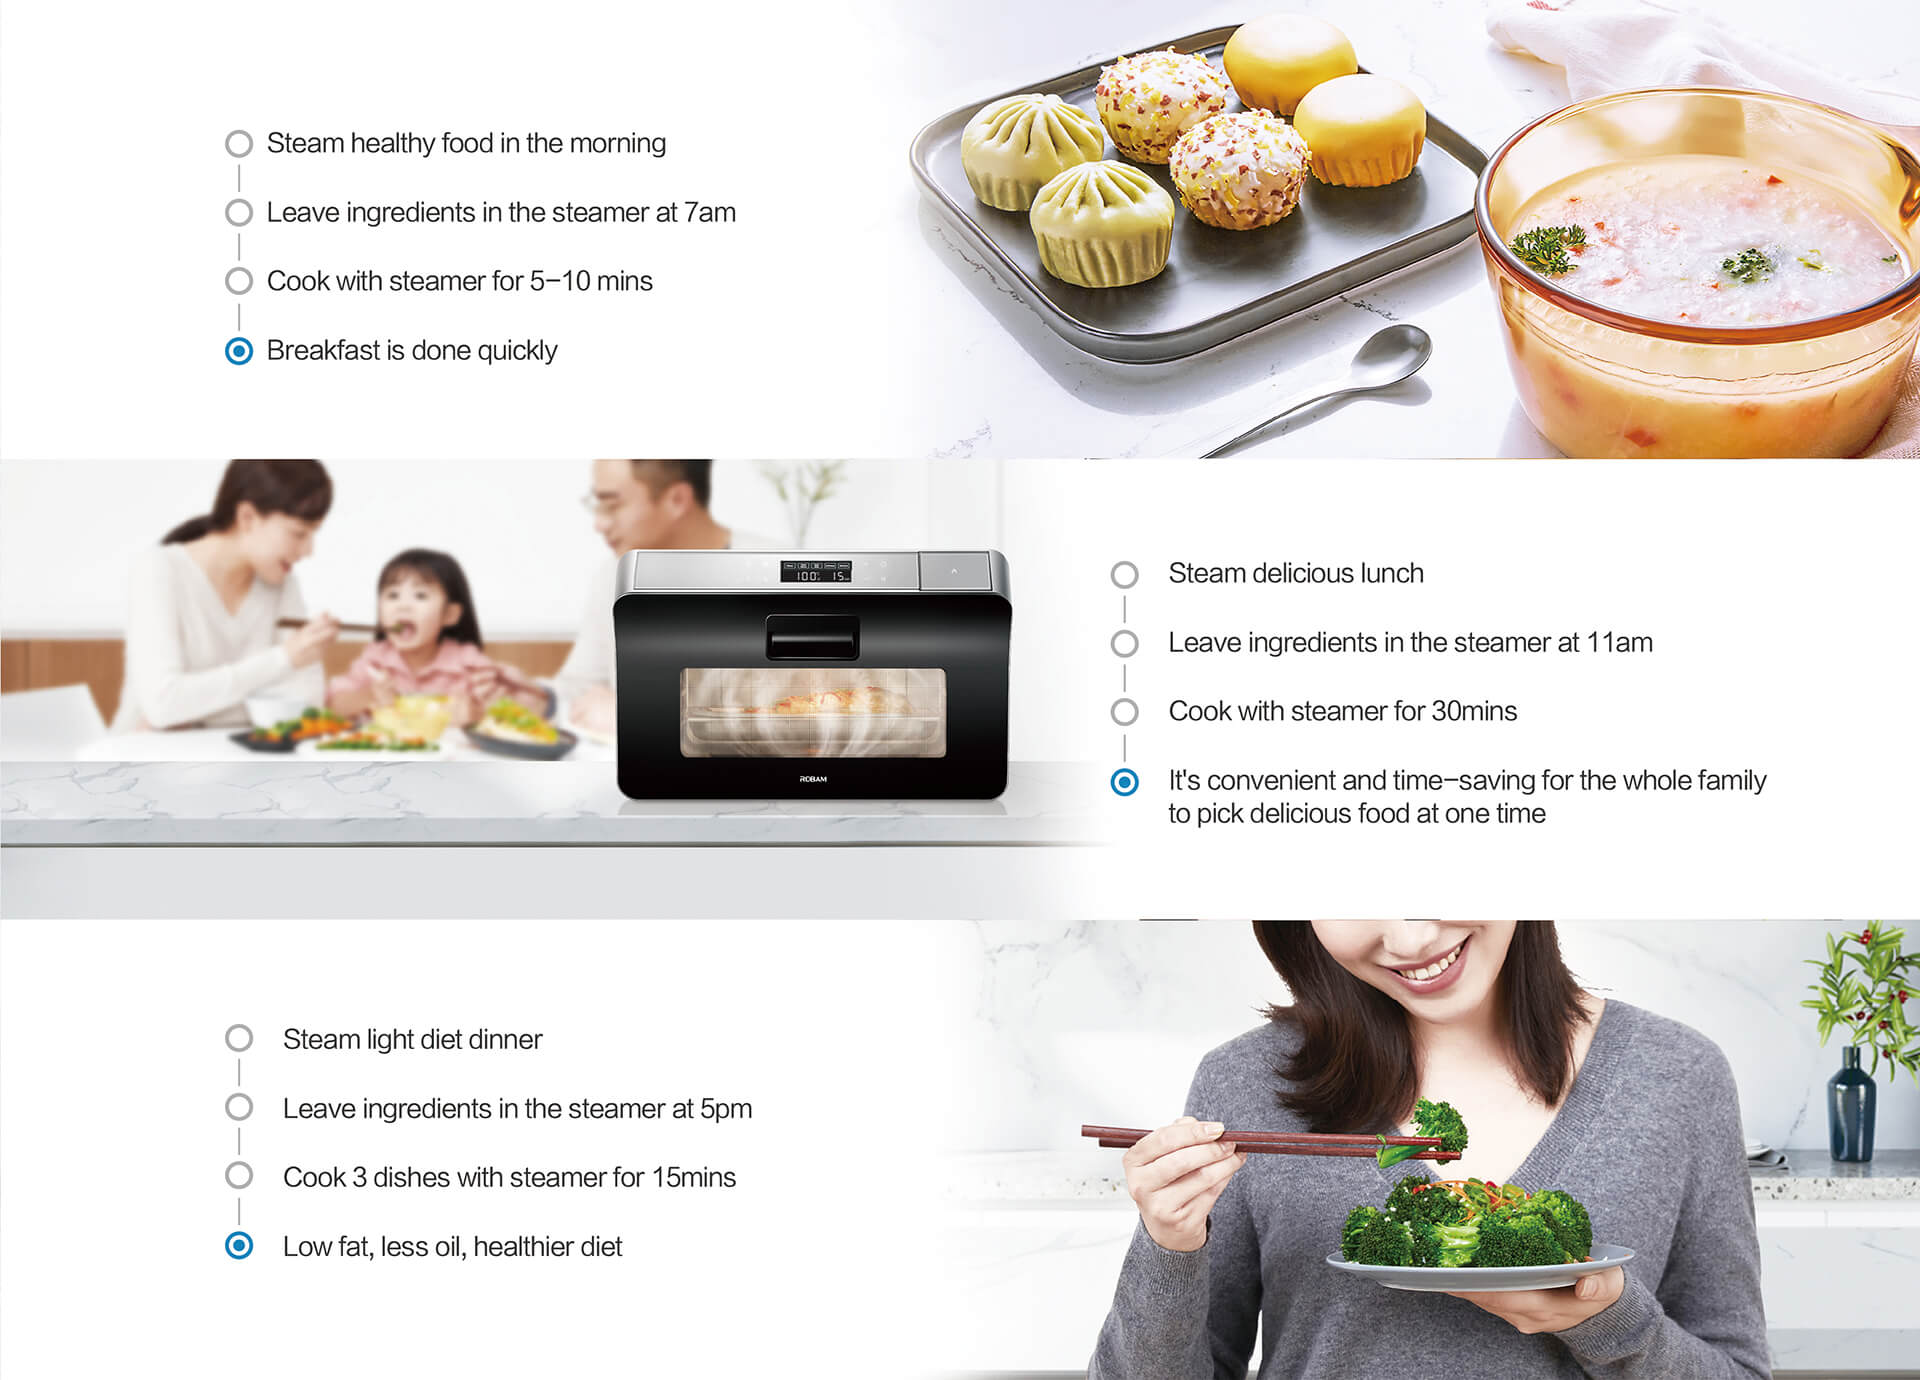 the taste of food is better: after heating in microwave oven, the taste of food will be lost and the things made will dry; while the original technology of the ROBAM steamer makes the air circulation in the